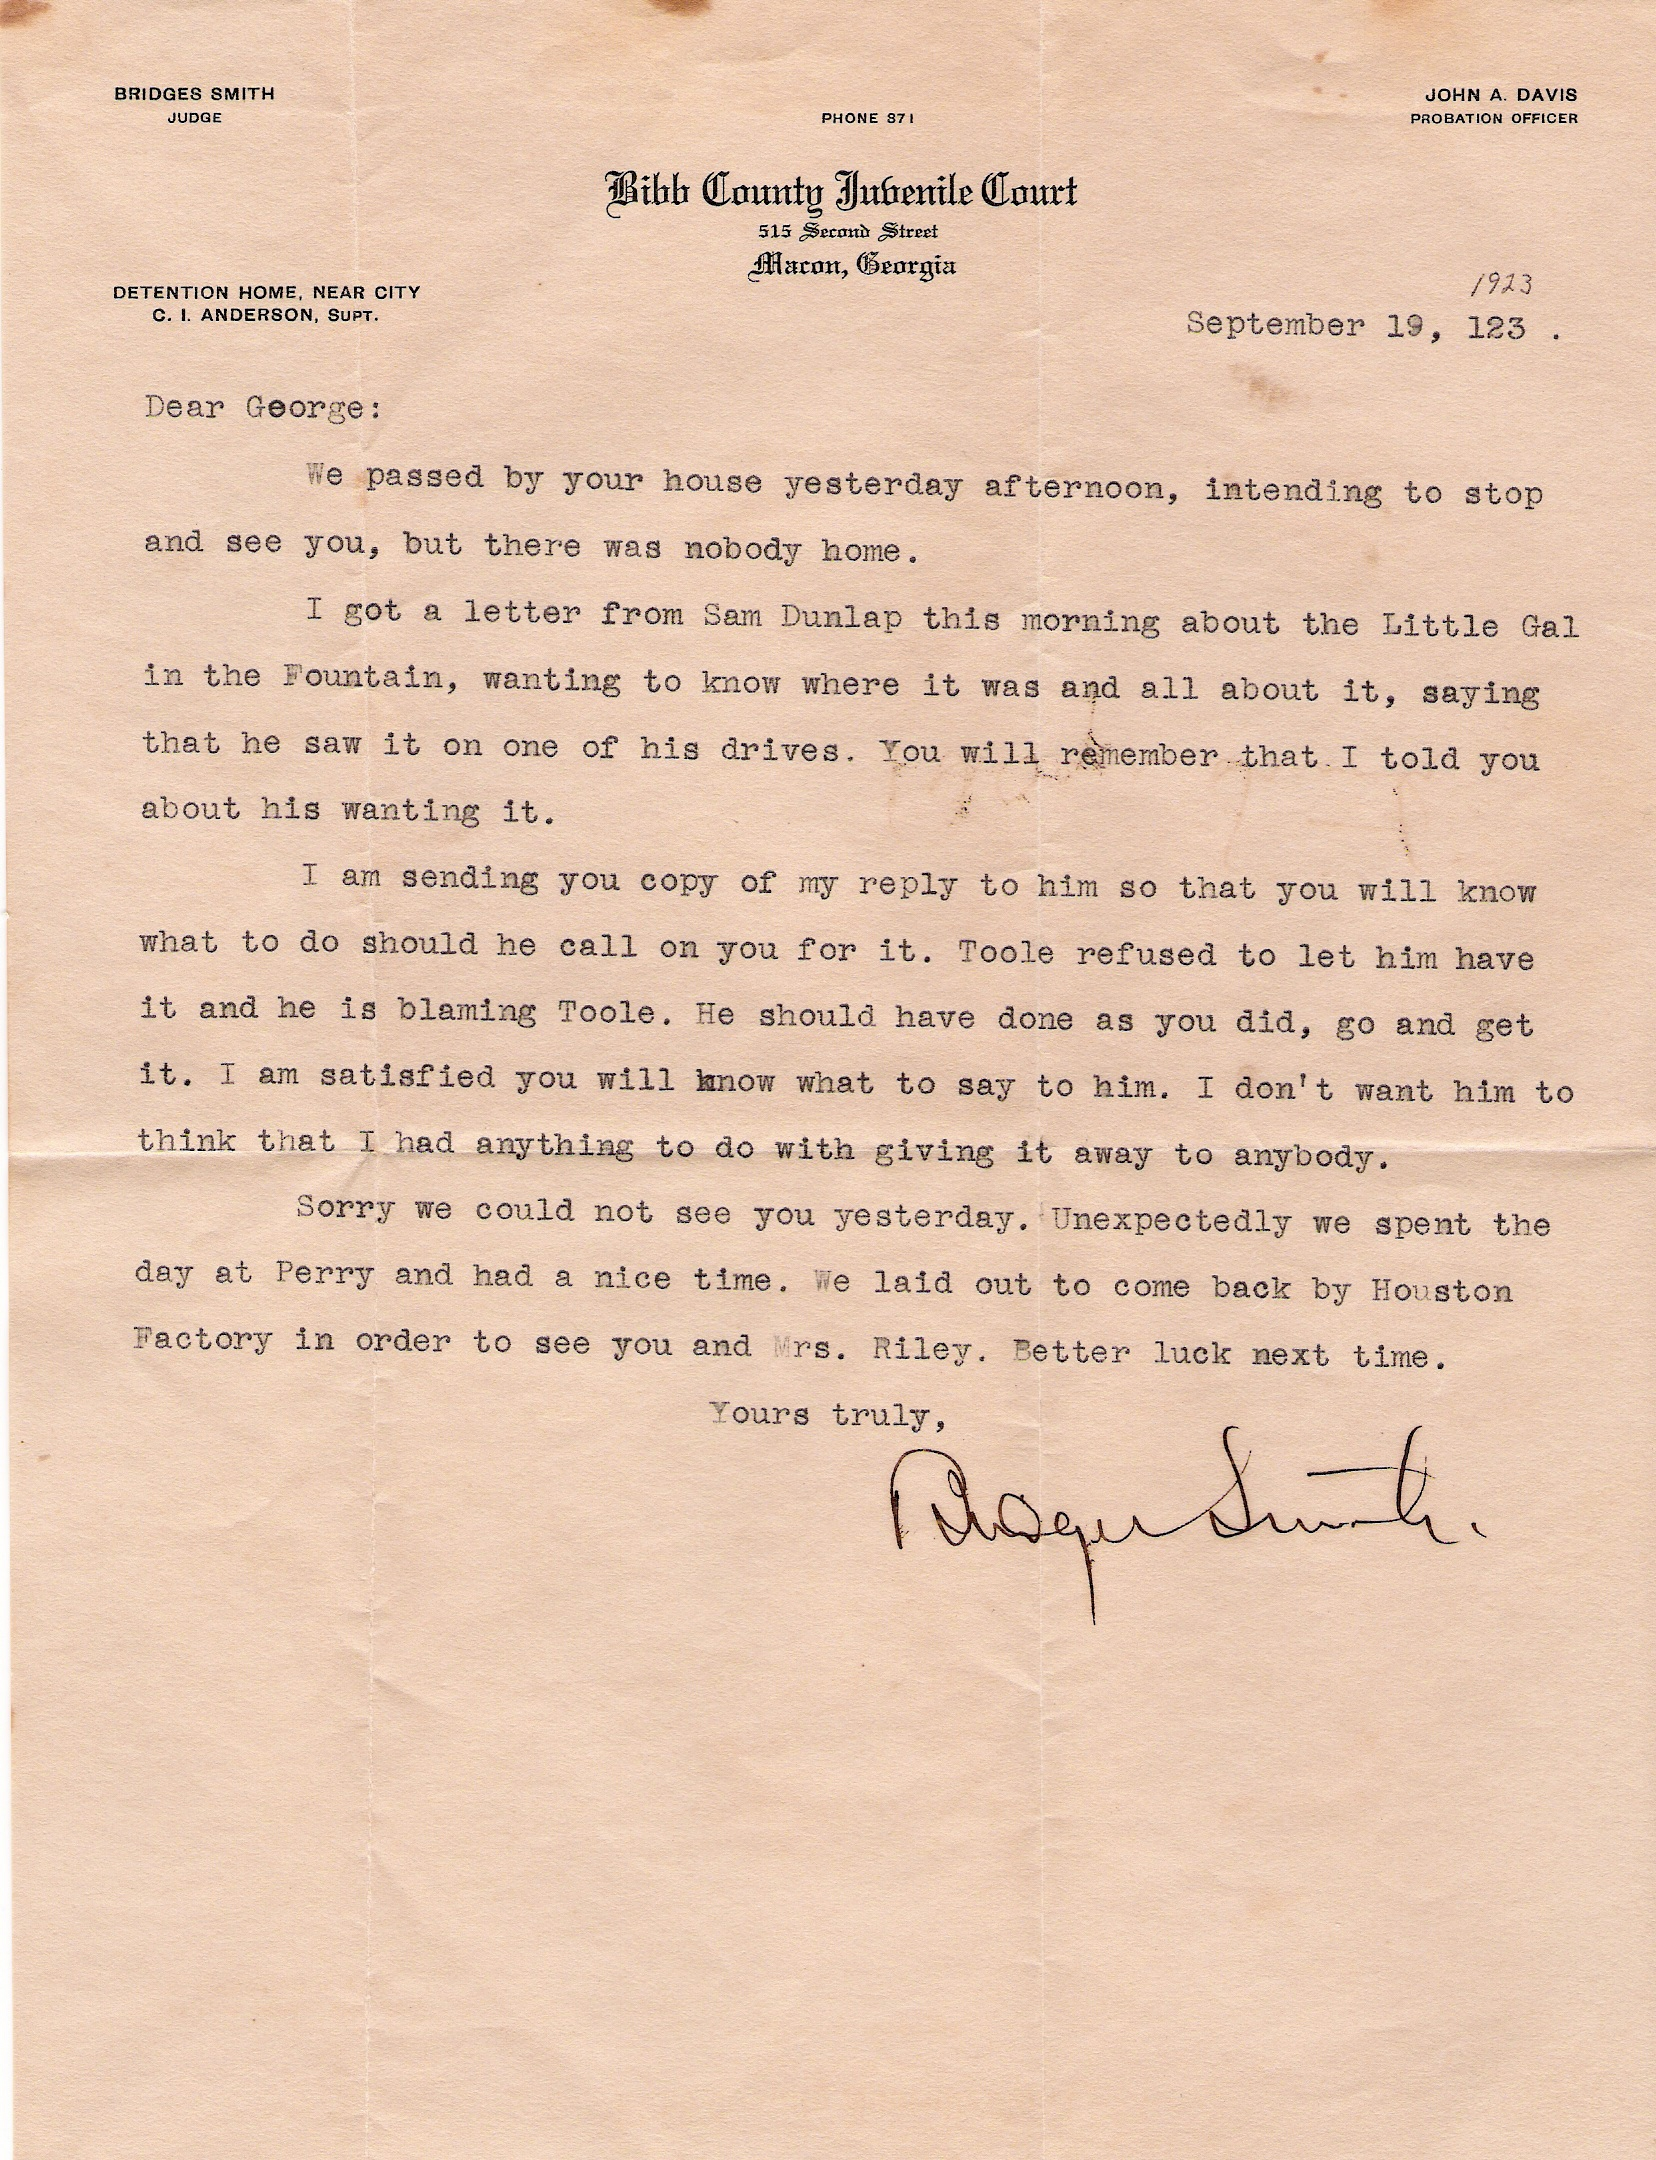 Lady of the fountain abducted from macon to kathleen ga circa 1918 letter from former mayor now judge bridges smith spiritdancerdesigns Choice Image